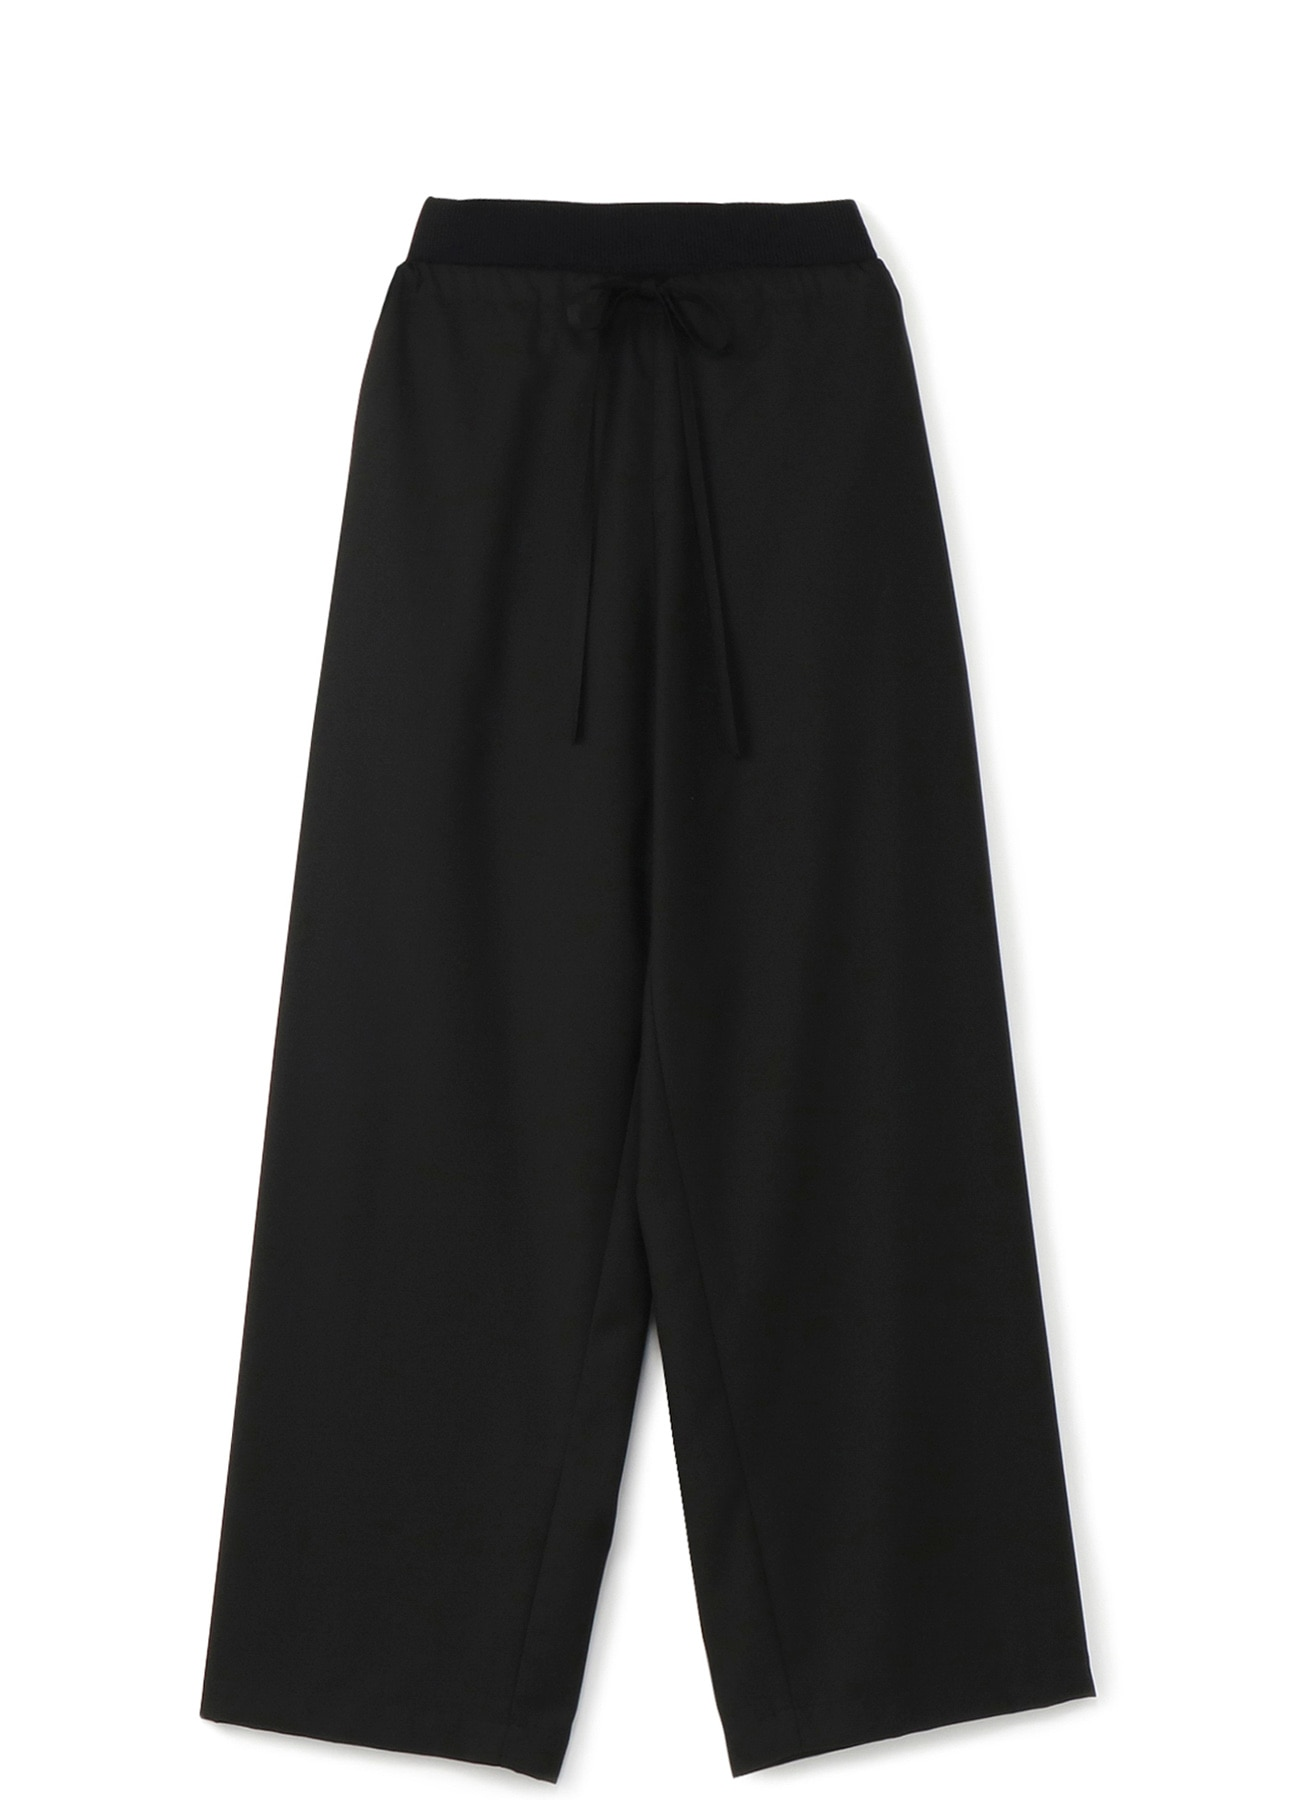 RISMATbyY's polyester Rayon Clear Twill wide pants with waist rib